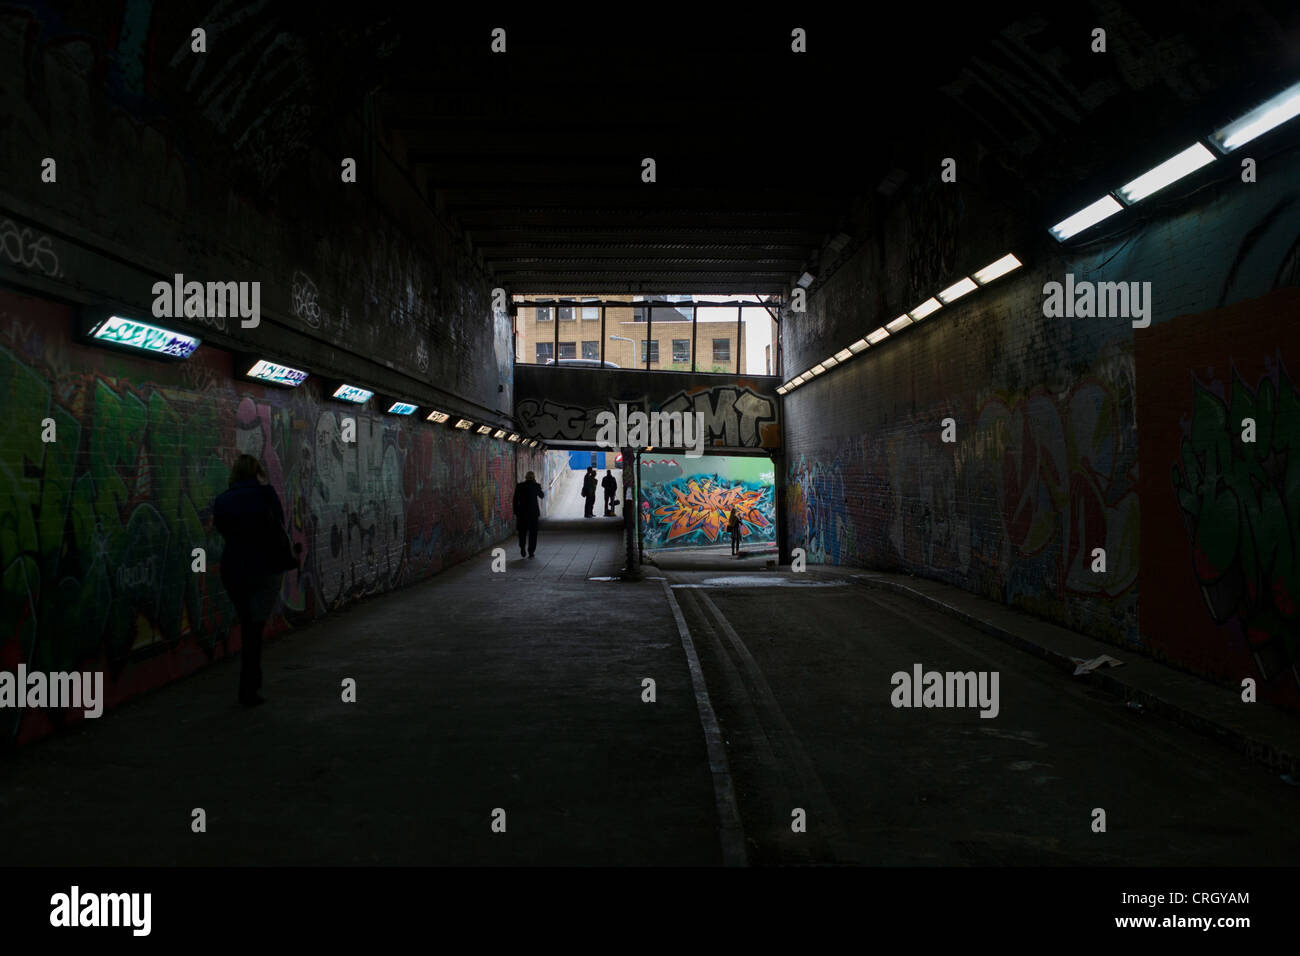 Sinister silhouettes in underpass tunnel with walls covered with urban graffiti. - Stock Image